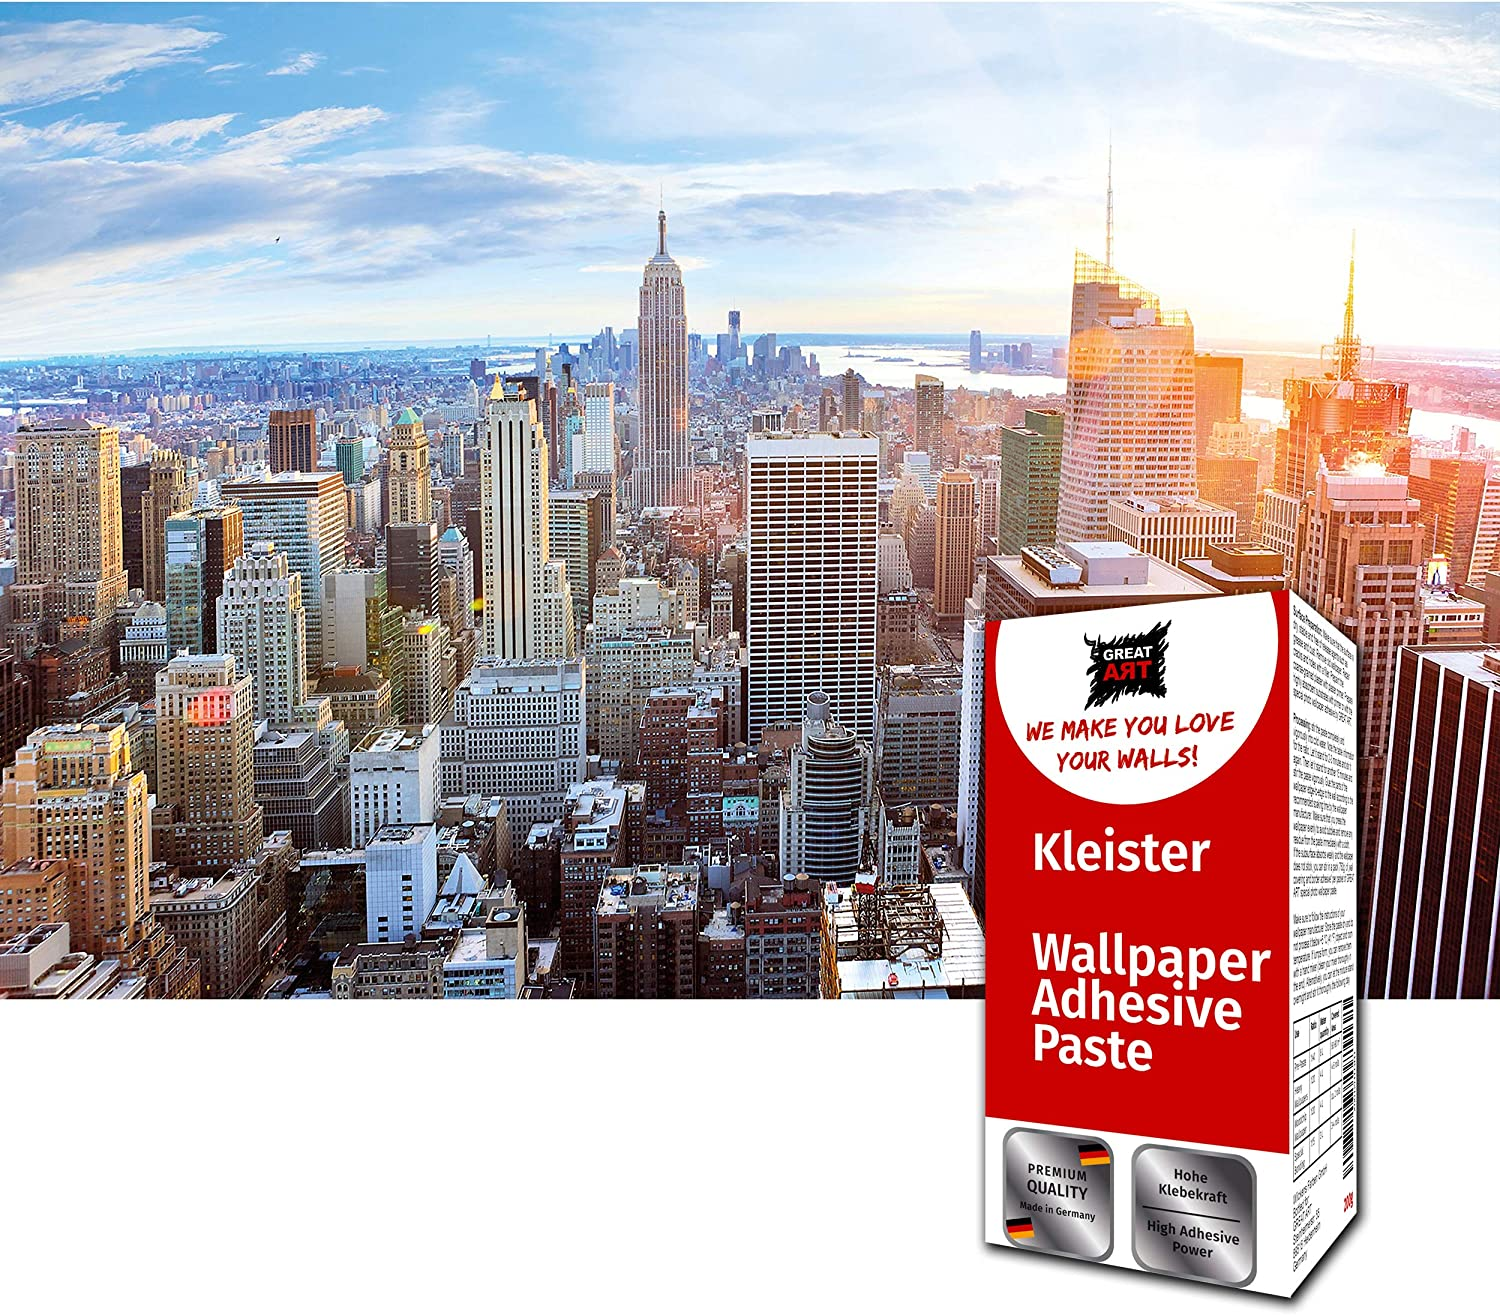 GREAT ART Photo Wallpaper New York Skyline Decoration 132.3x93.7in / 336x238cm – Penthouse View Panorama Dawn Big Apple America USA Skyscrapers Mural – 8 Pieces Includes Paste